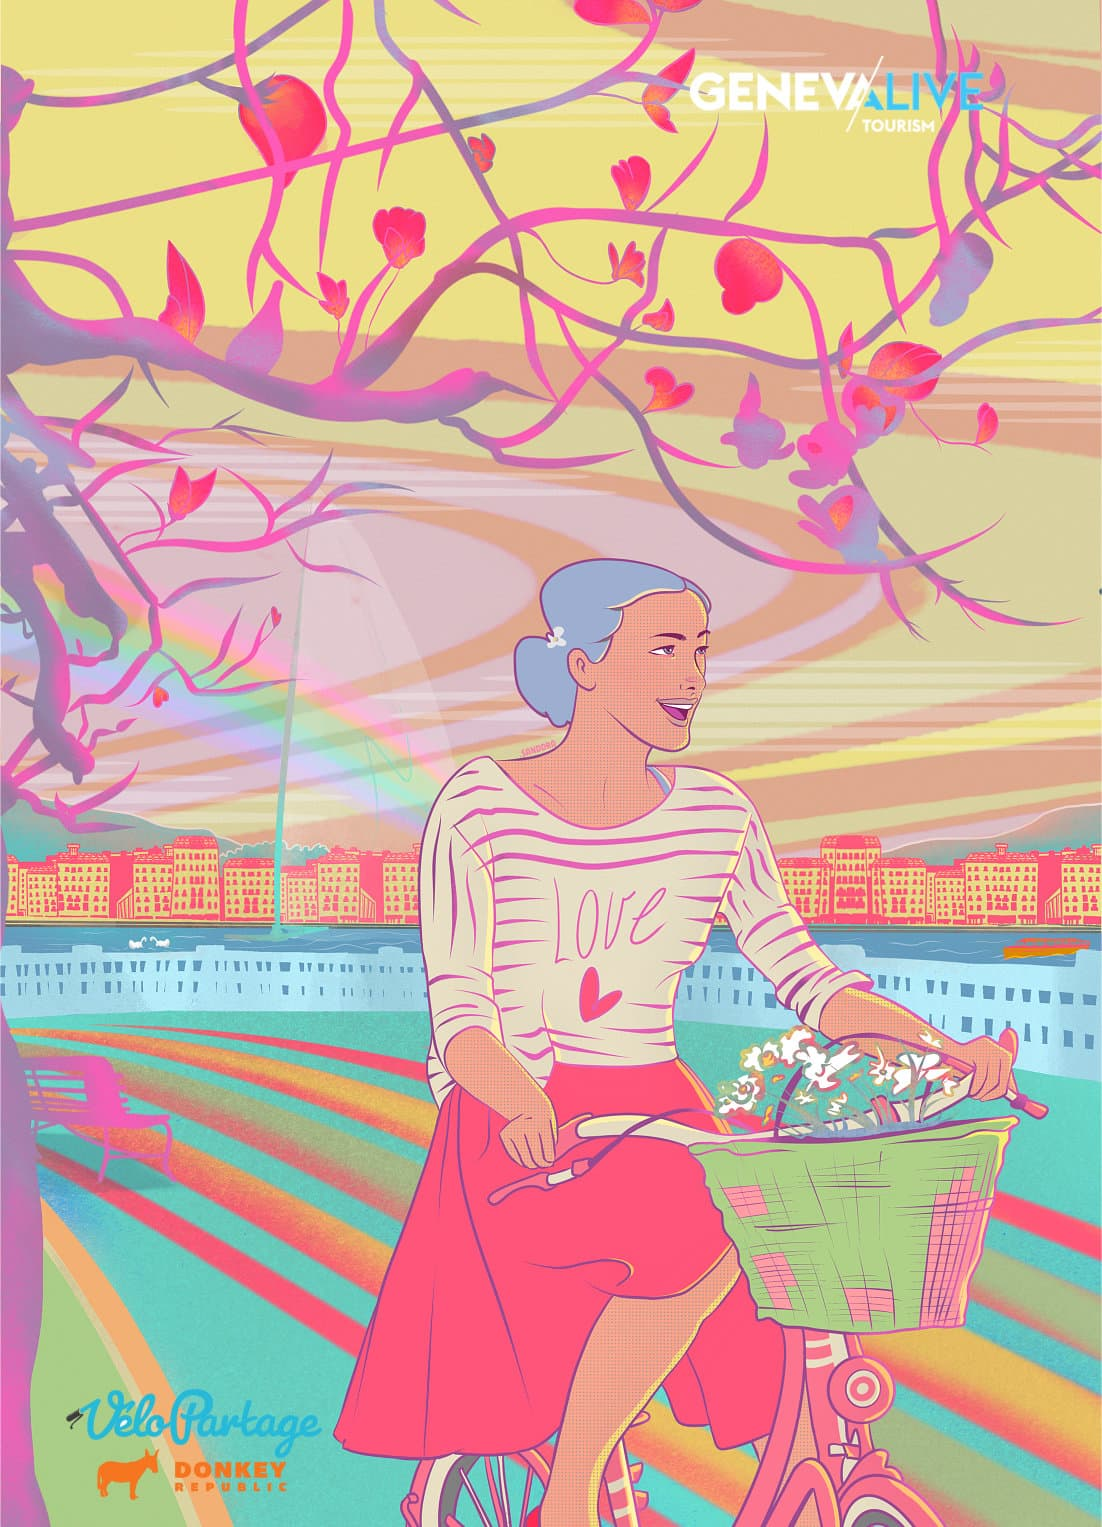 portfolio page adverising poster named slow down illustrated with a woman biking on the Geneva lake shore